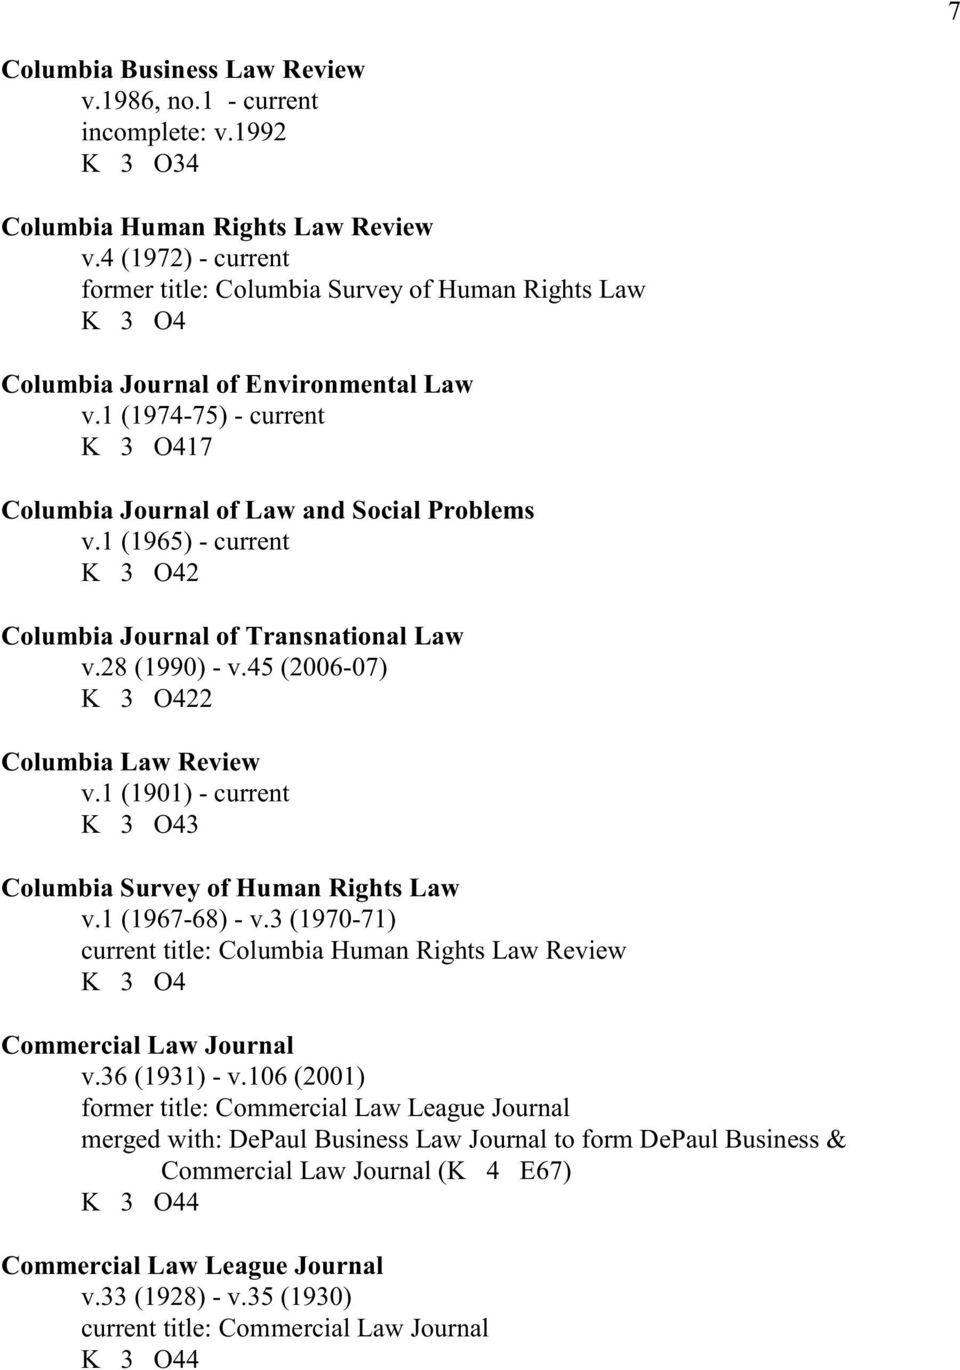 1 (1965) - current K 3 O42 Columbia Journal of Transnational Law v.28 (1990) - v.45 (2006-07) K 3 O422 Columbia Law Review v.1 (1901) - current K 3 O43 Columbia Survey of Human Rights Law v.